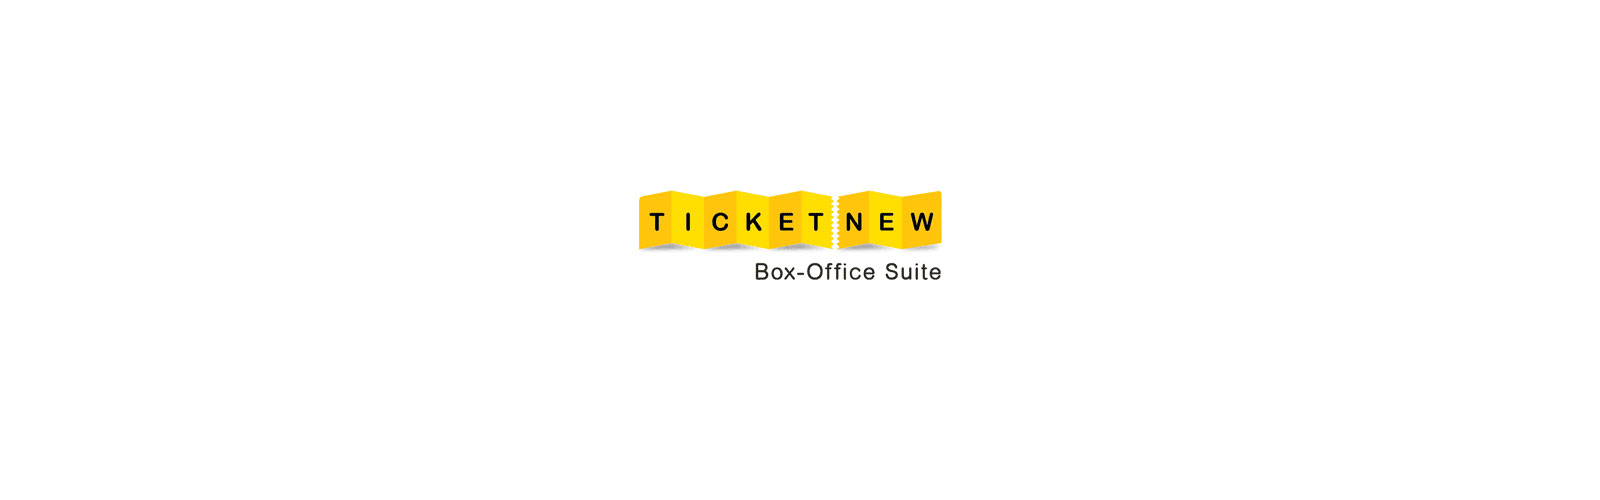 ticketnew